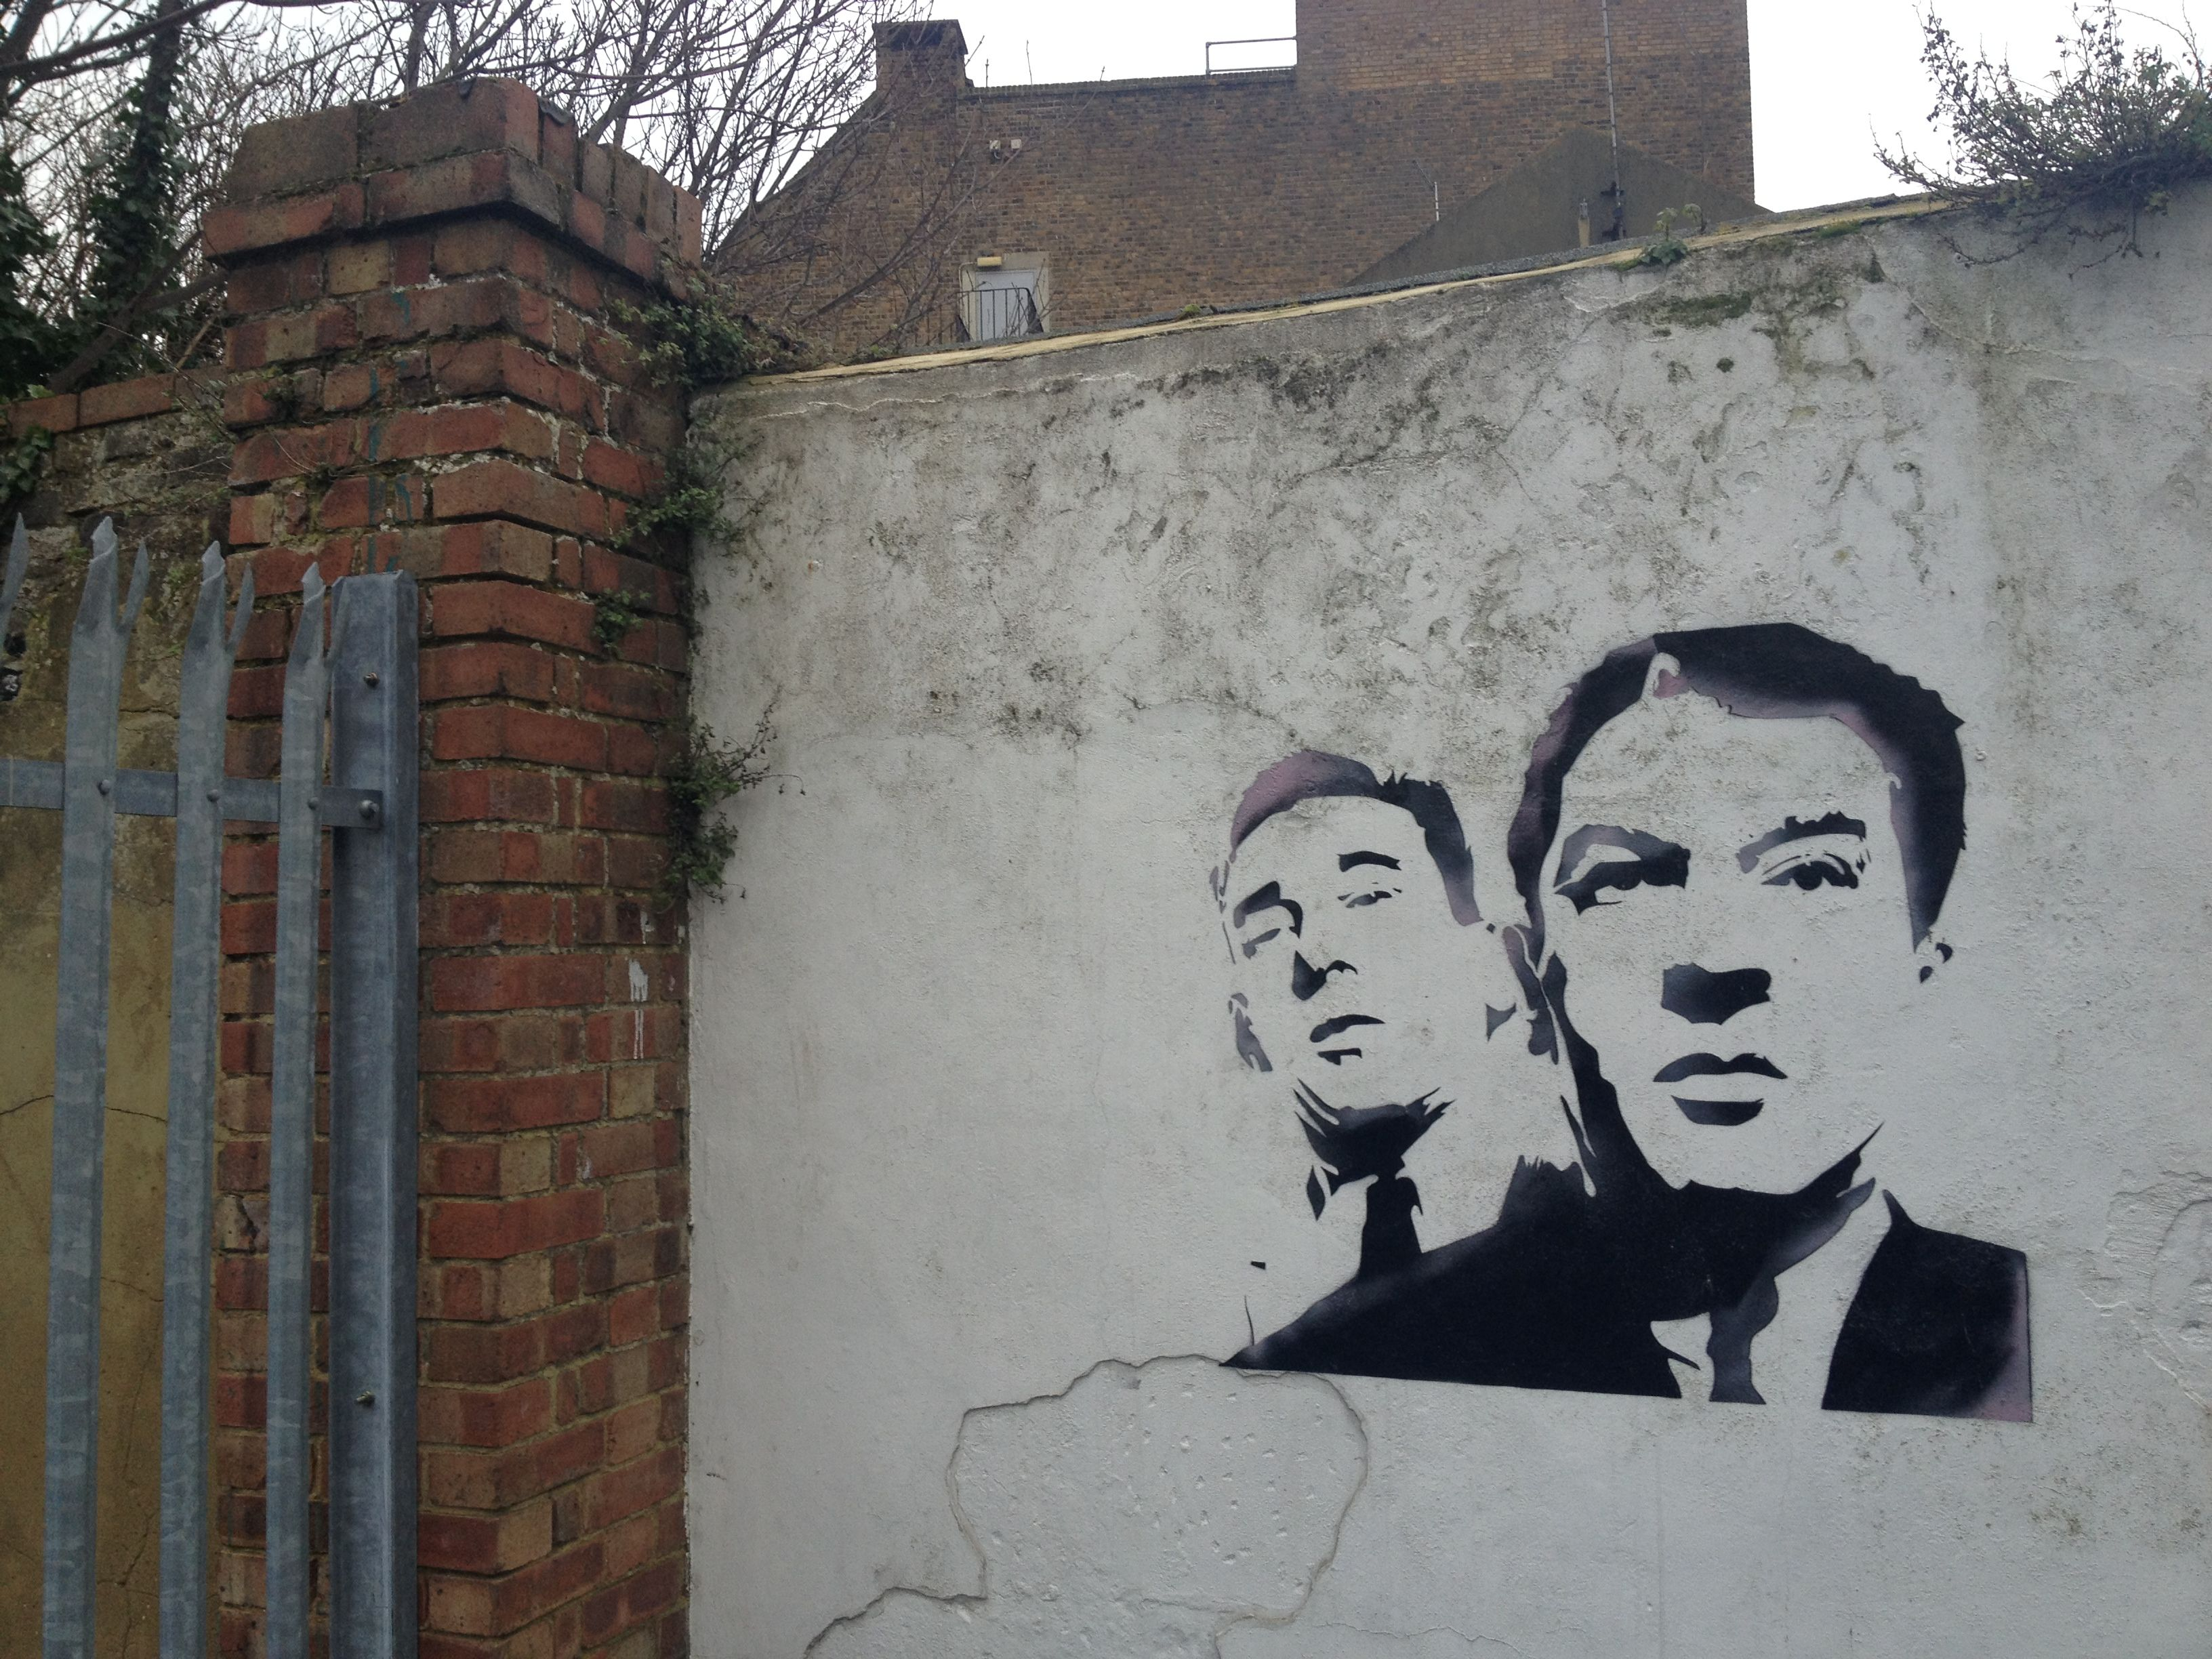 The Krays artwork found in Margate.